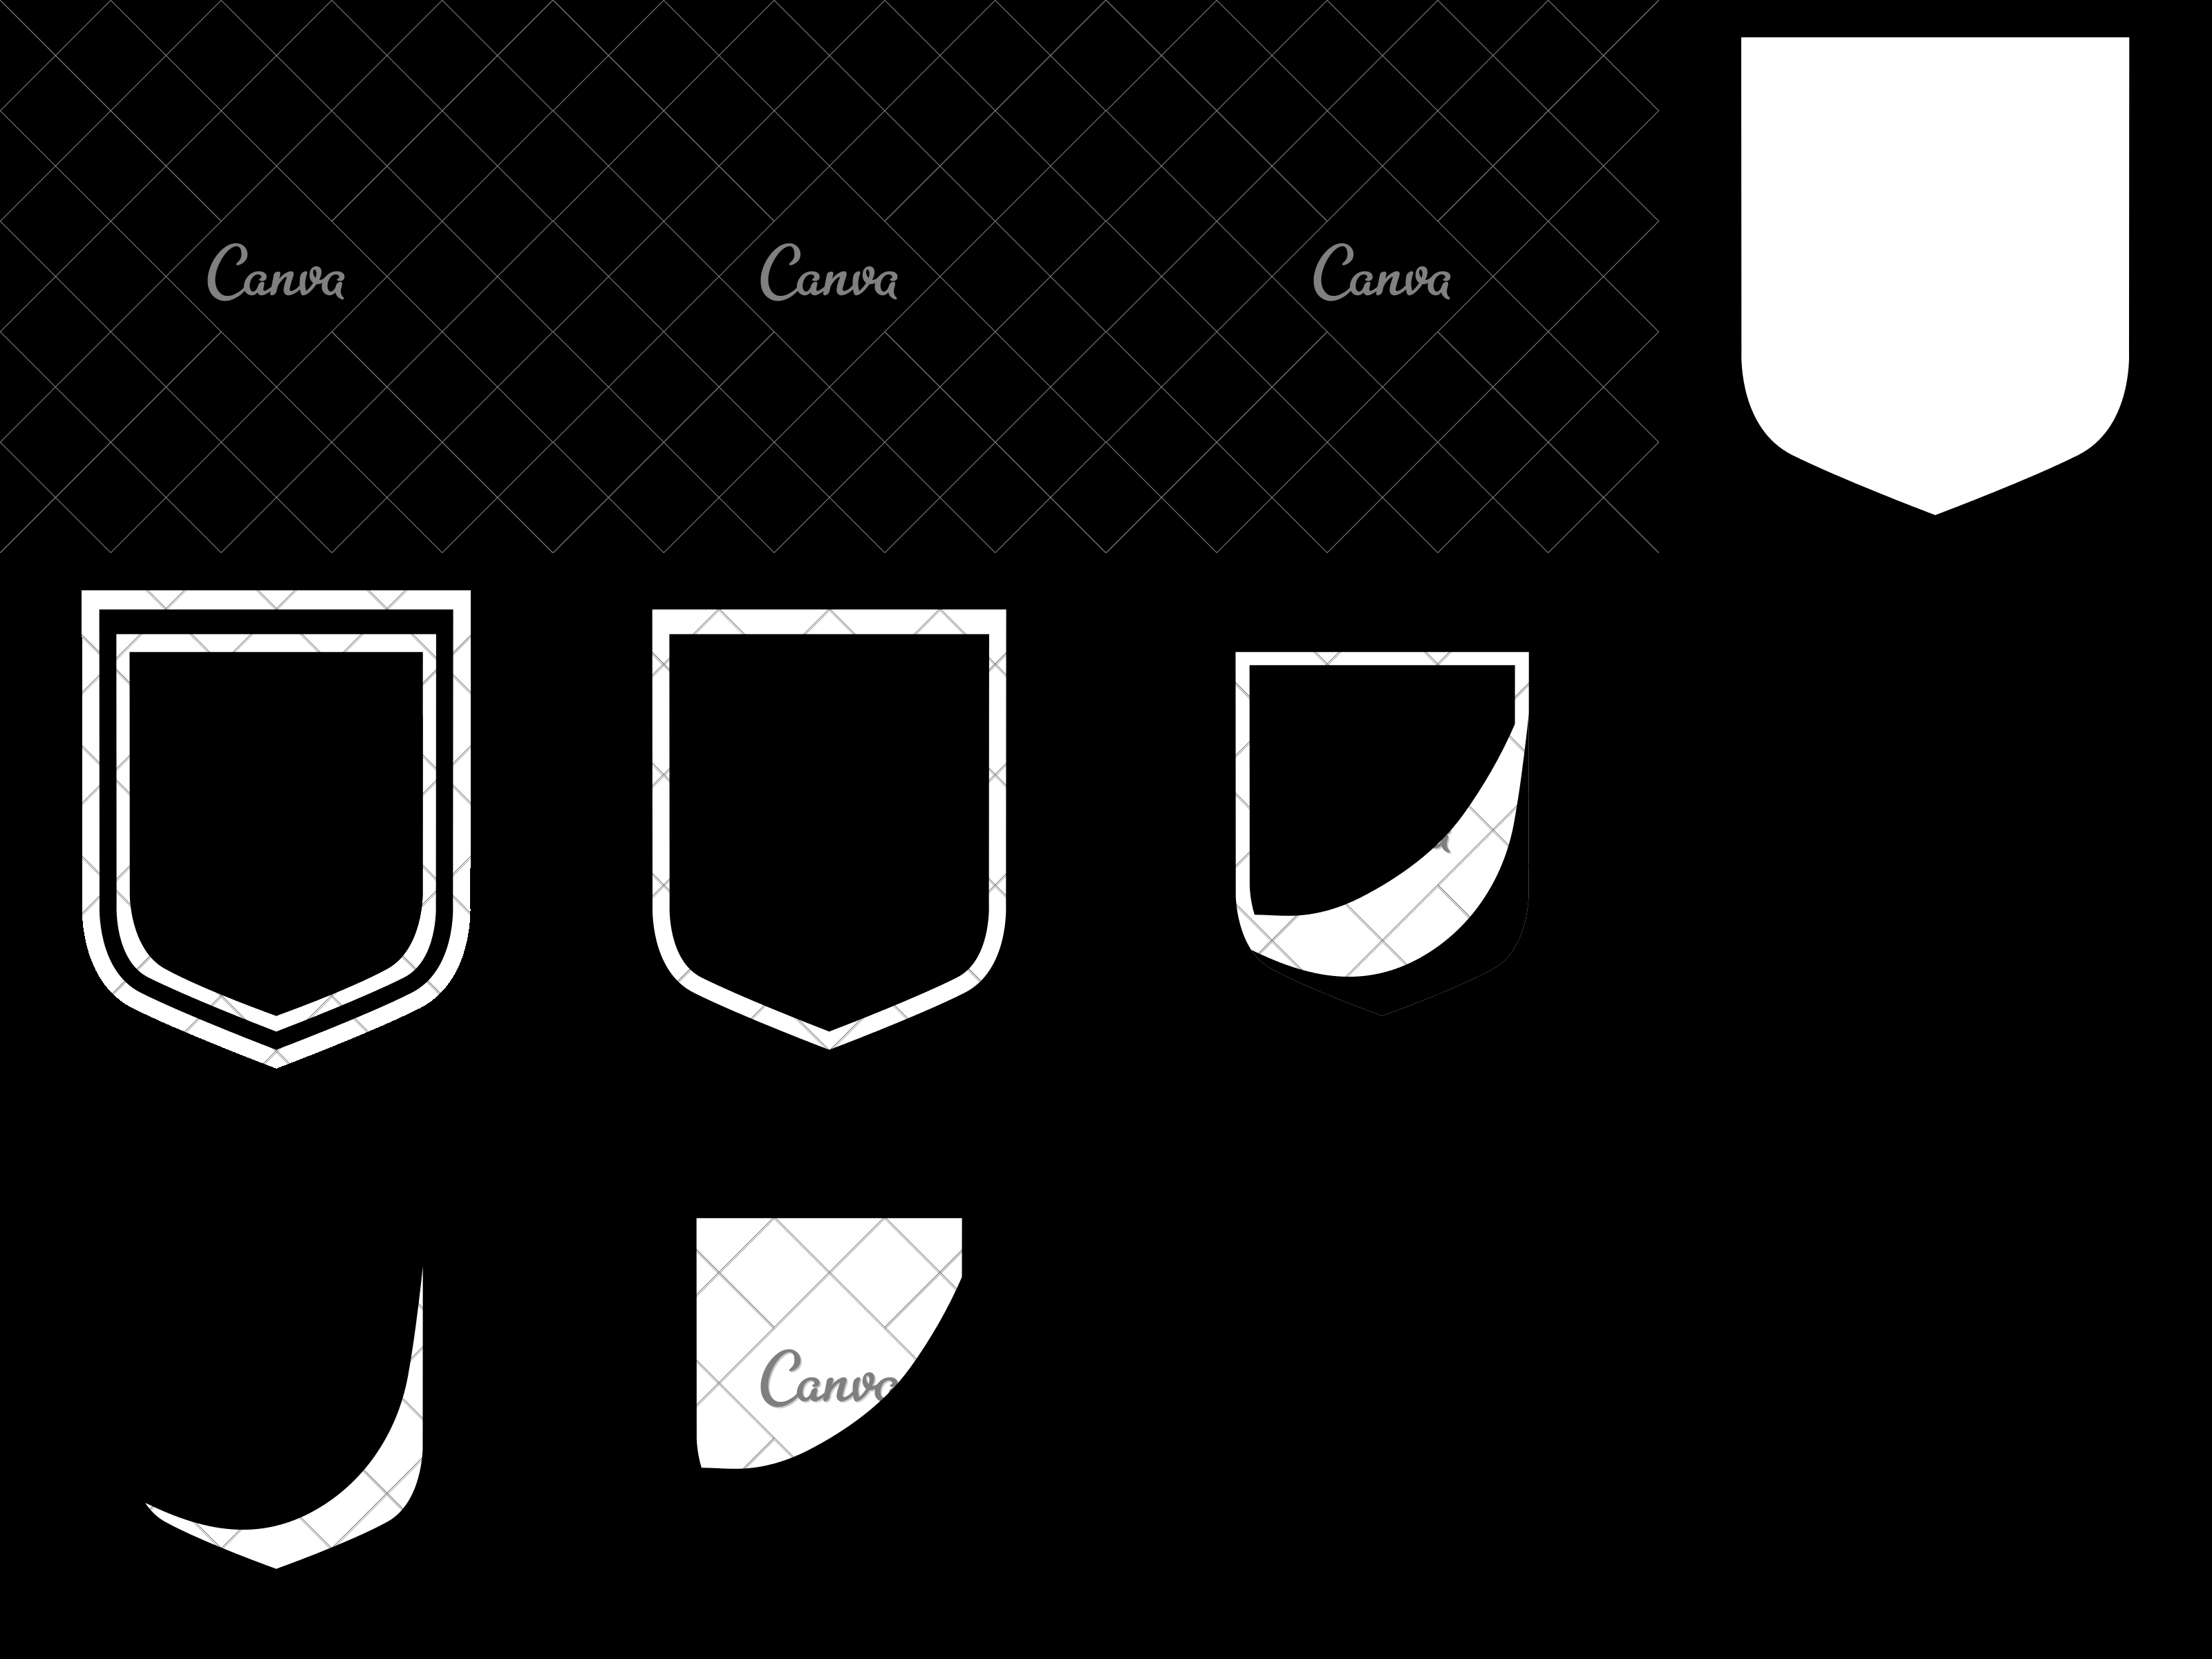 Shield Vector Png at GetDrawings com | Free for personal use